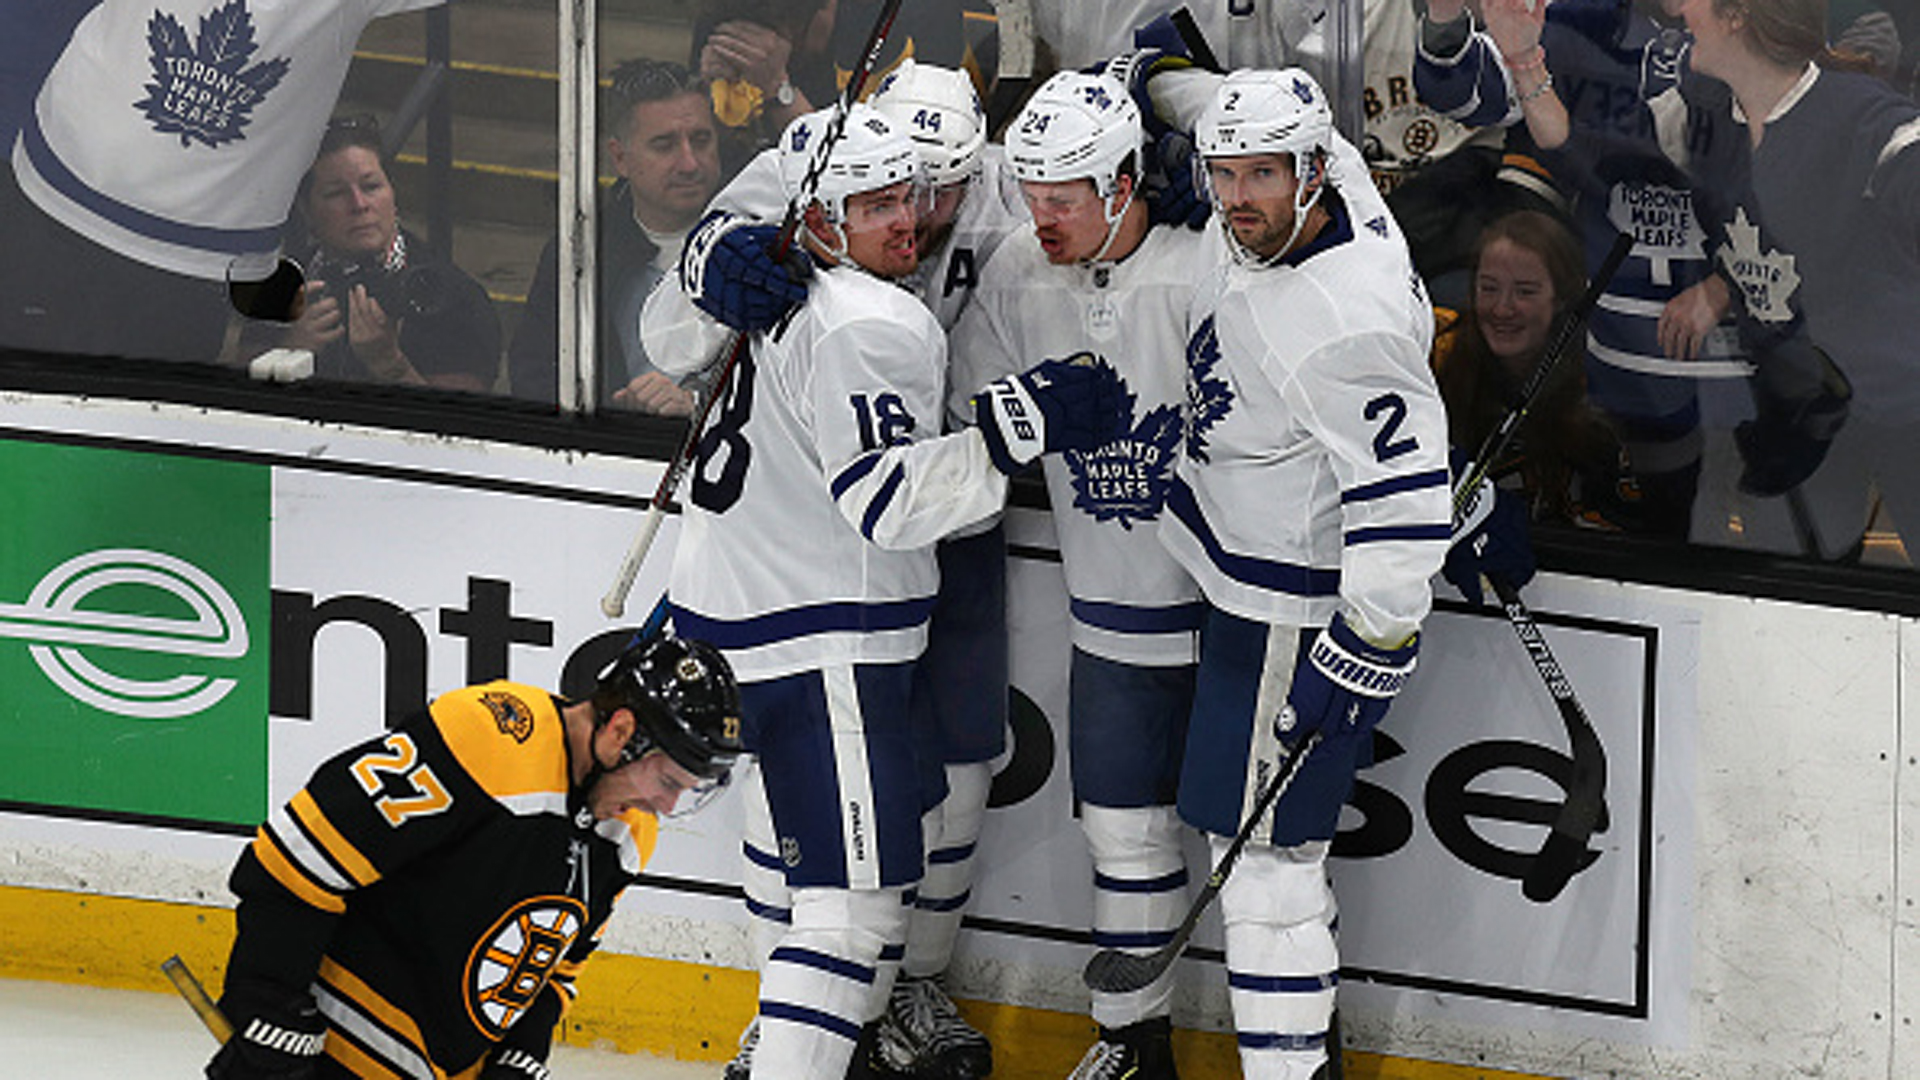 McKenzie: Leafs have played a more confident brand of hockey compared to last year